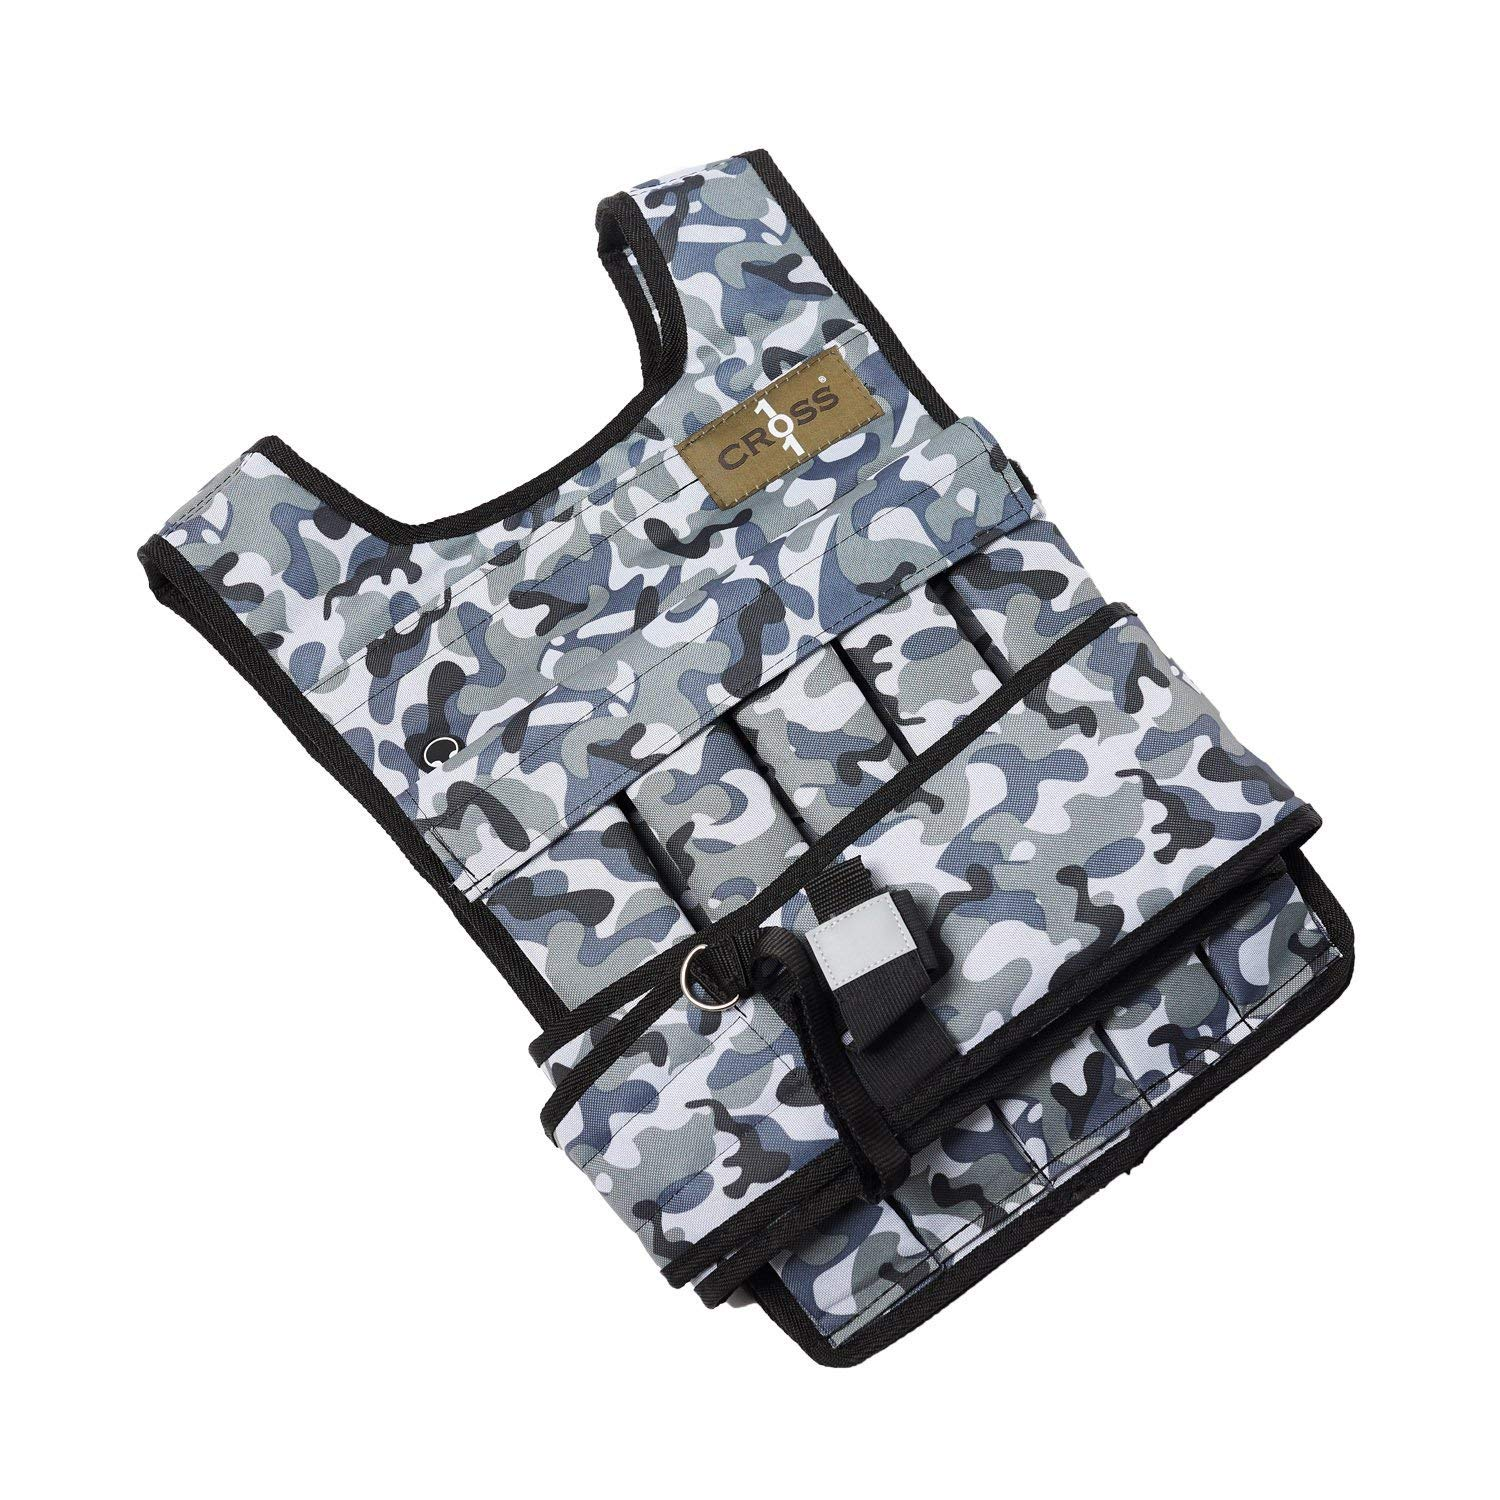 CROSS101 Adjustable Camouflage Weighted Vest 12LBS - 140LBS (Arctic - 60LBS) by CROSS101 (Image #2)